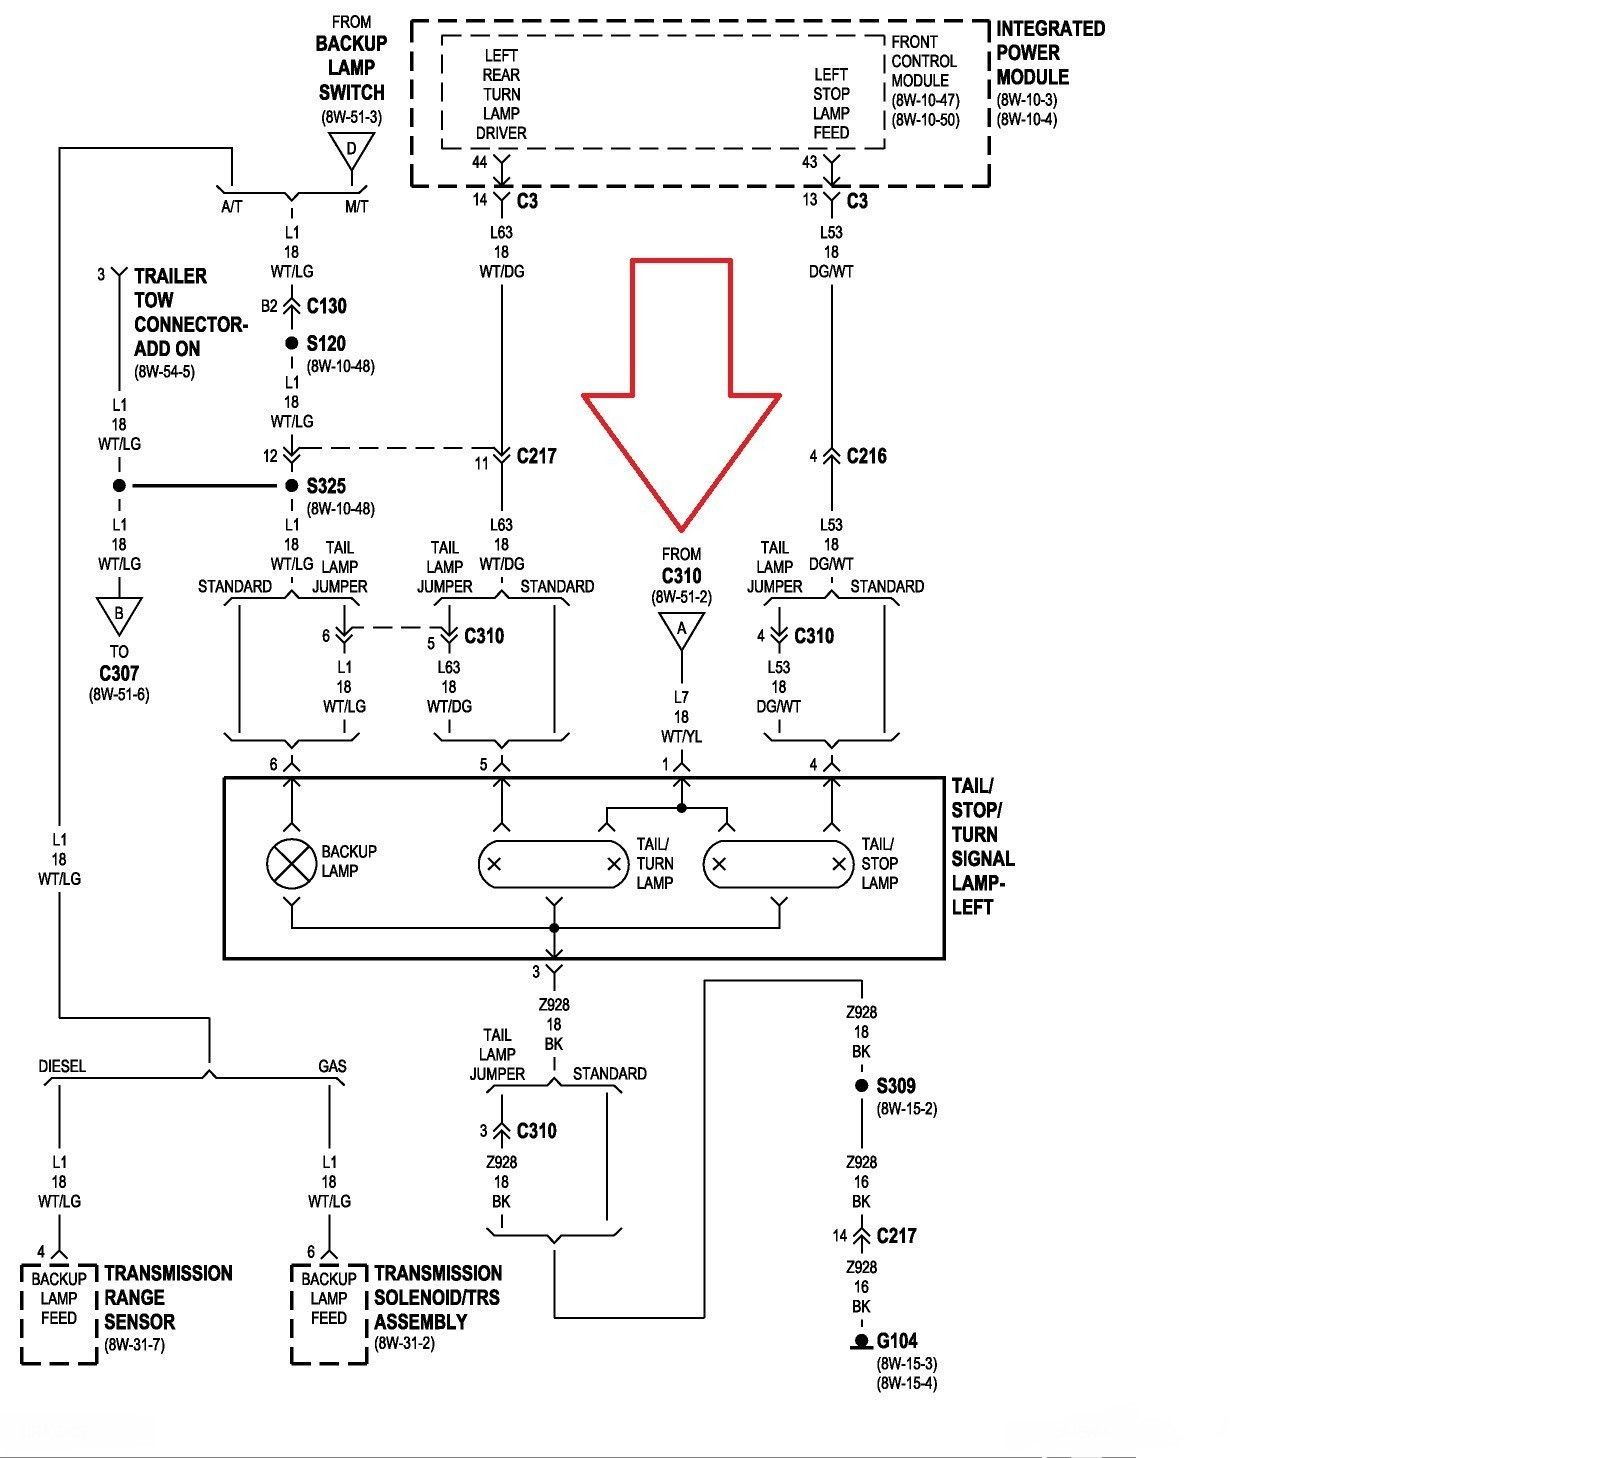 99 Dodge Ram Heater Control Wiring Diagram